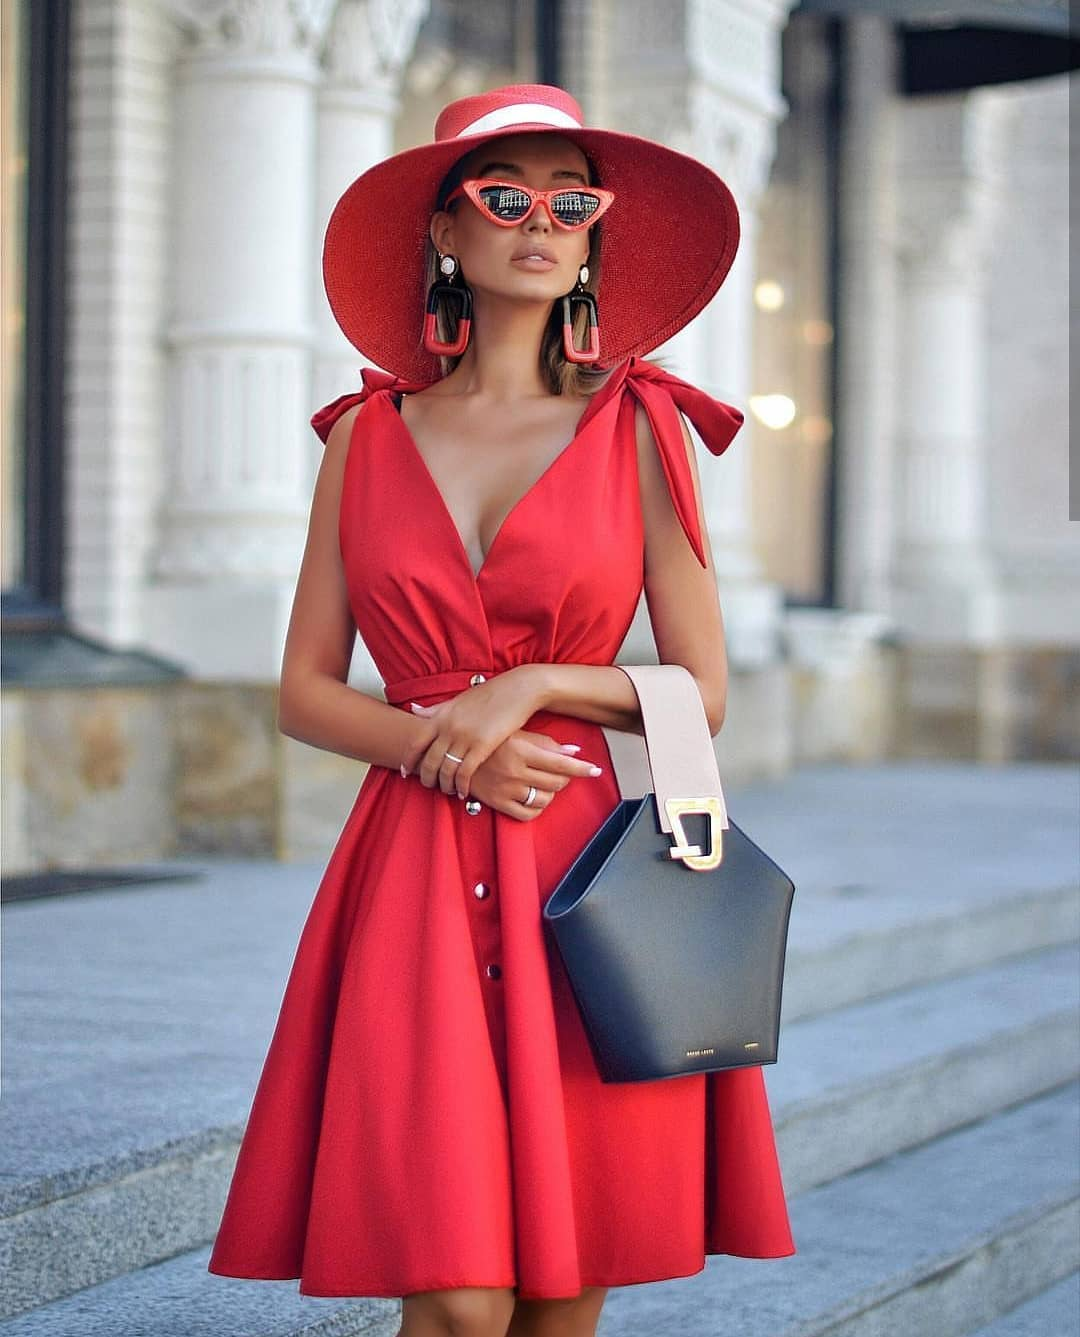 All Red Outfit For Summer Vacation 2020